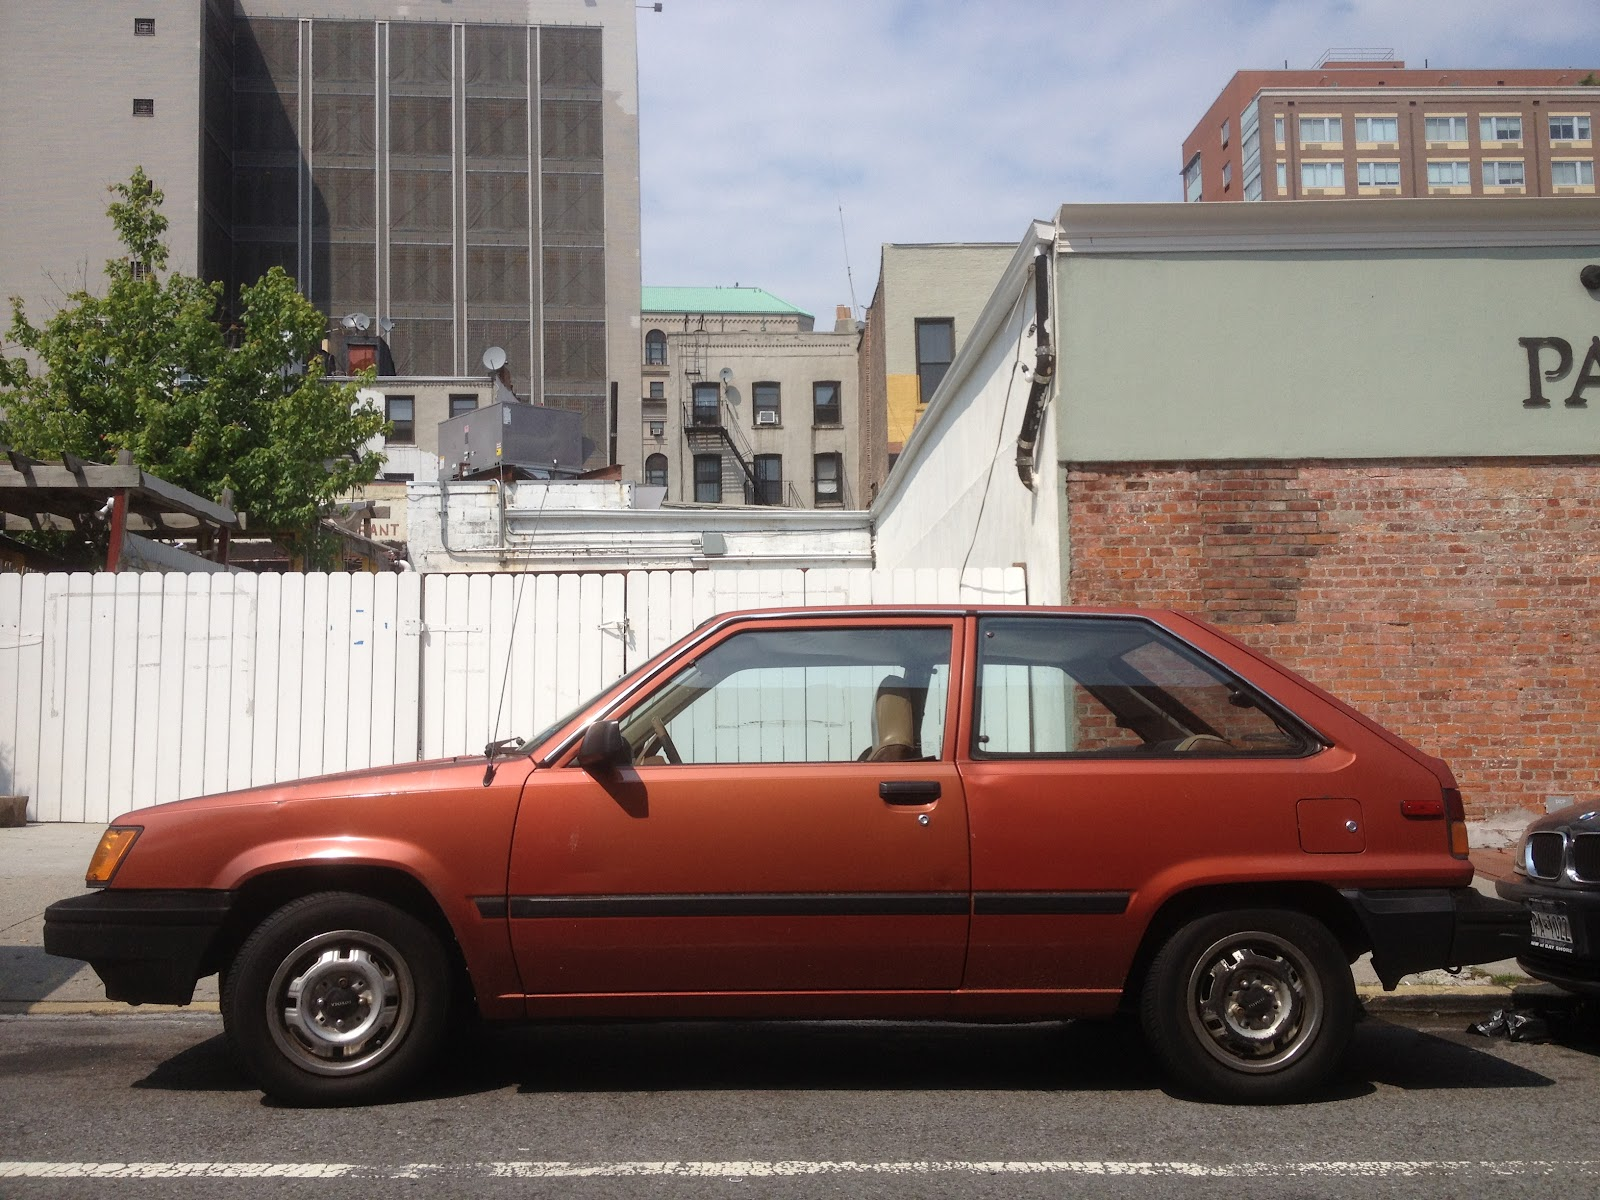 mitsubishi starion engine with 1982 Toyota Tercel Three Door Hatchback on 1982 Toyota Tercel Three Door Hatchback furthermore Dodge Spirit Wiring Diagram Furthermore For 1988 furthermore Diecast car likewise Mitsubishi Lancer 2000 Turbo Production Version as well 967854 Mitsubishi Pajero Evolution Lifting 36 Inch Tires.